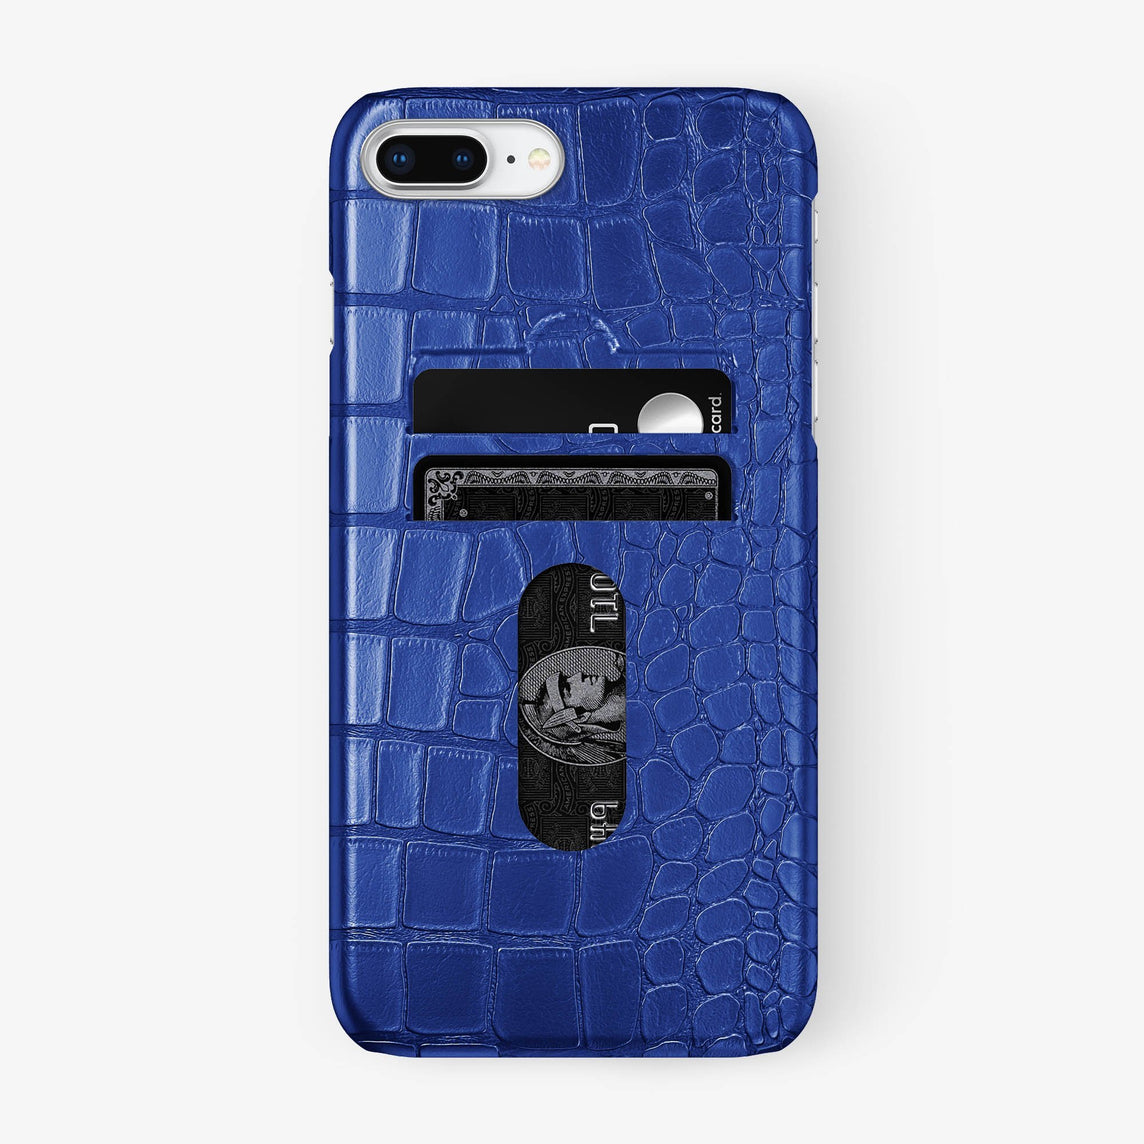 Alligator Card Holder Case iPhone 7/8 Plus | Peony Blue - Stainless Steel